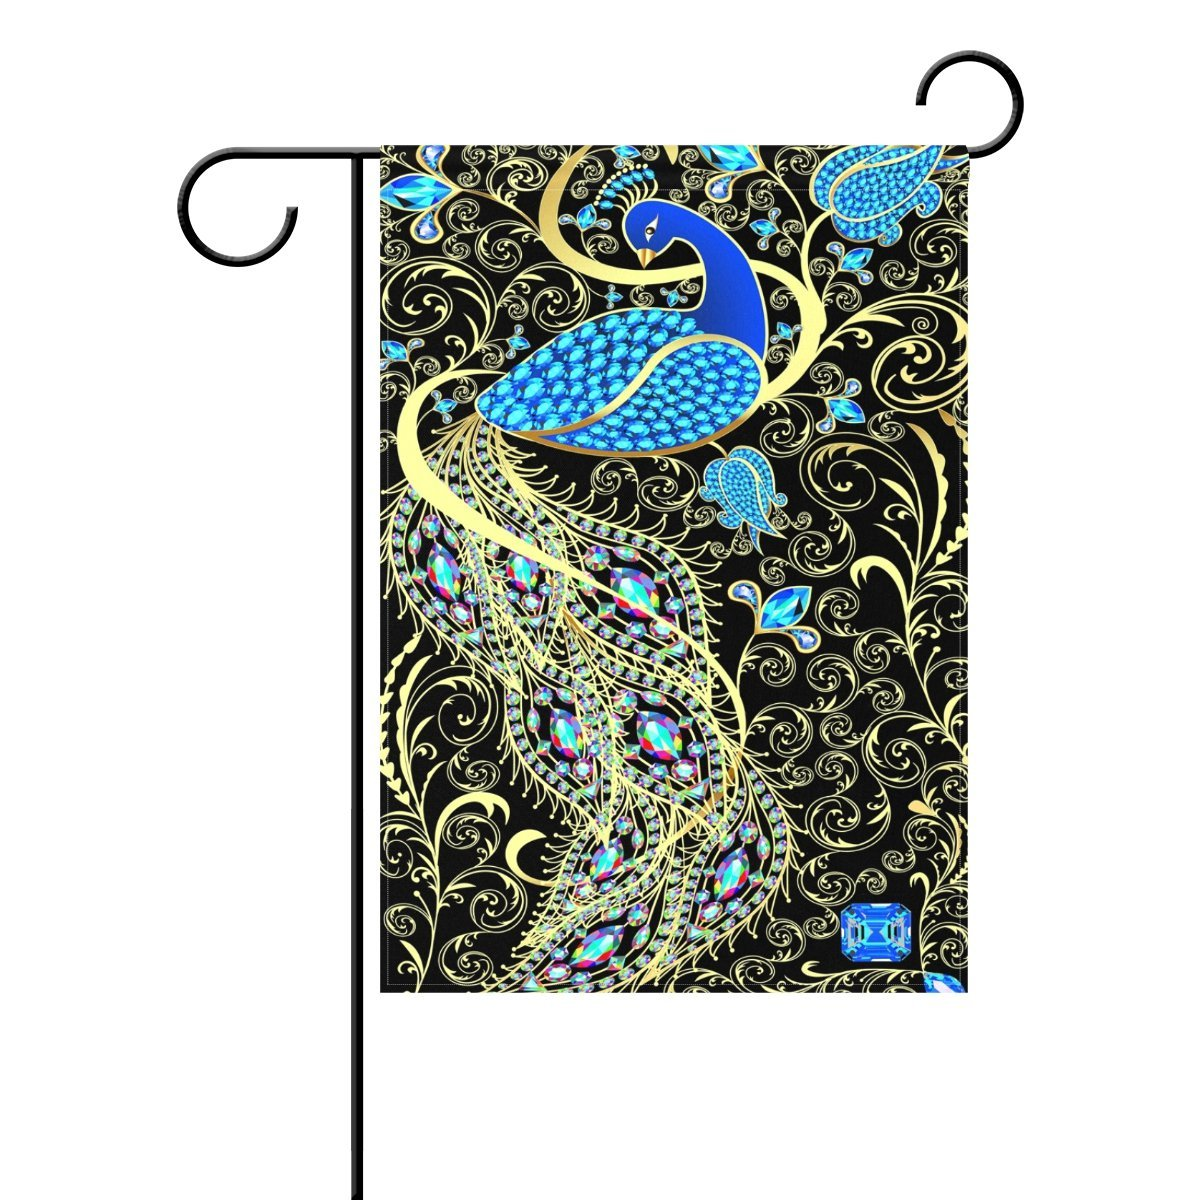 POPCreation Elegant Peacock Garden Flag Damask Flower Outdoor Home Party 12x18 inches